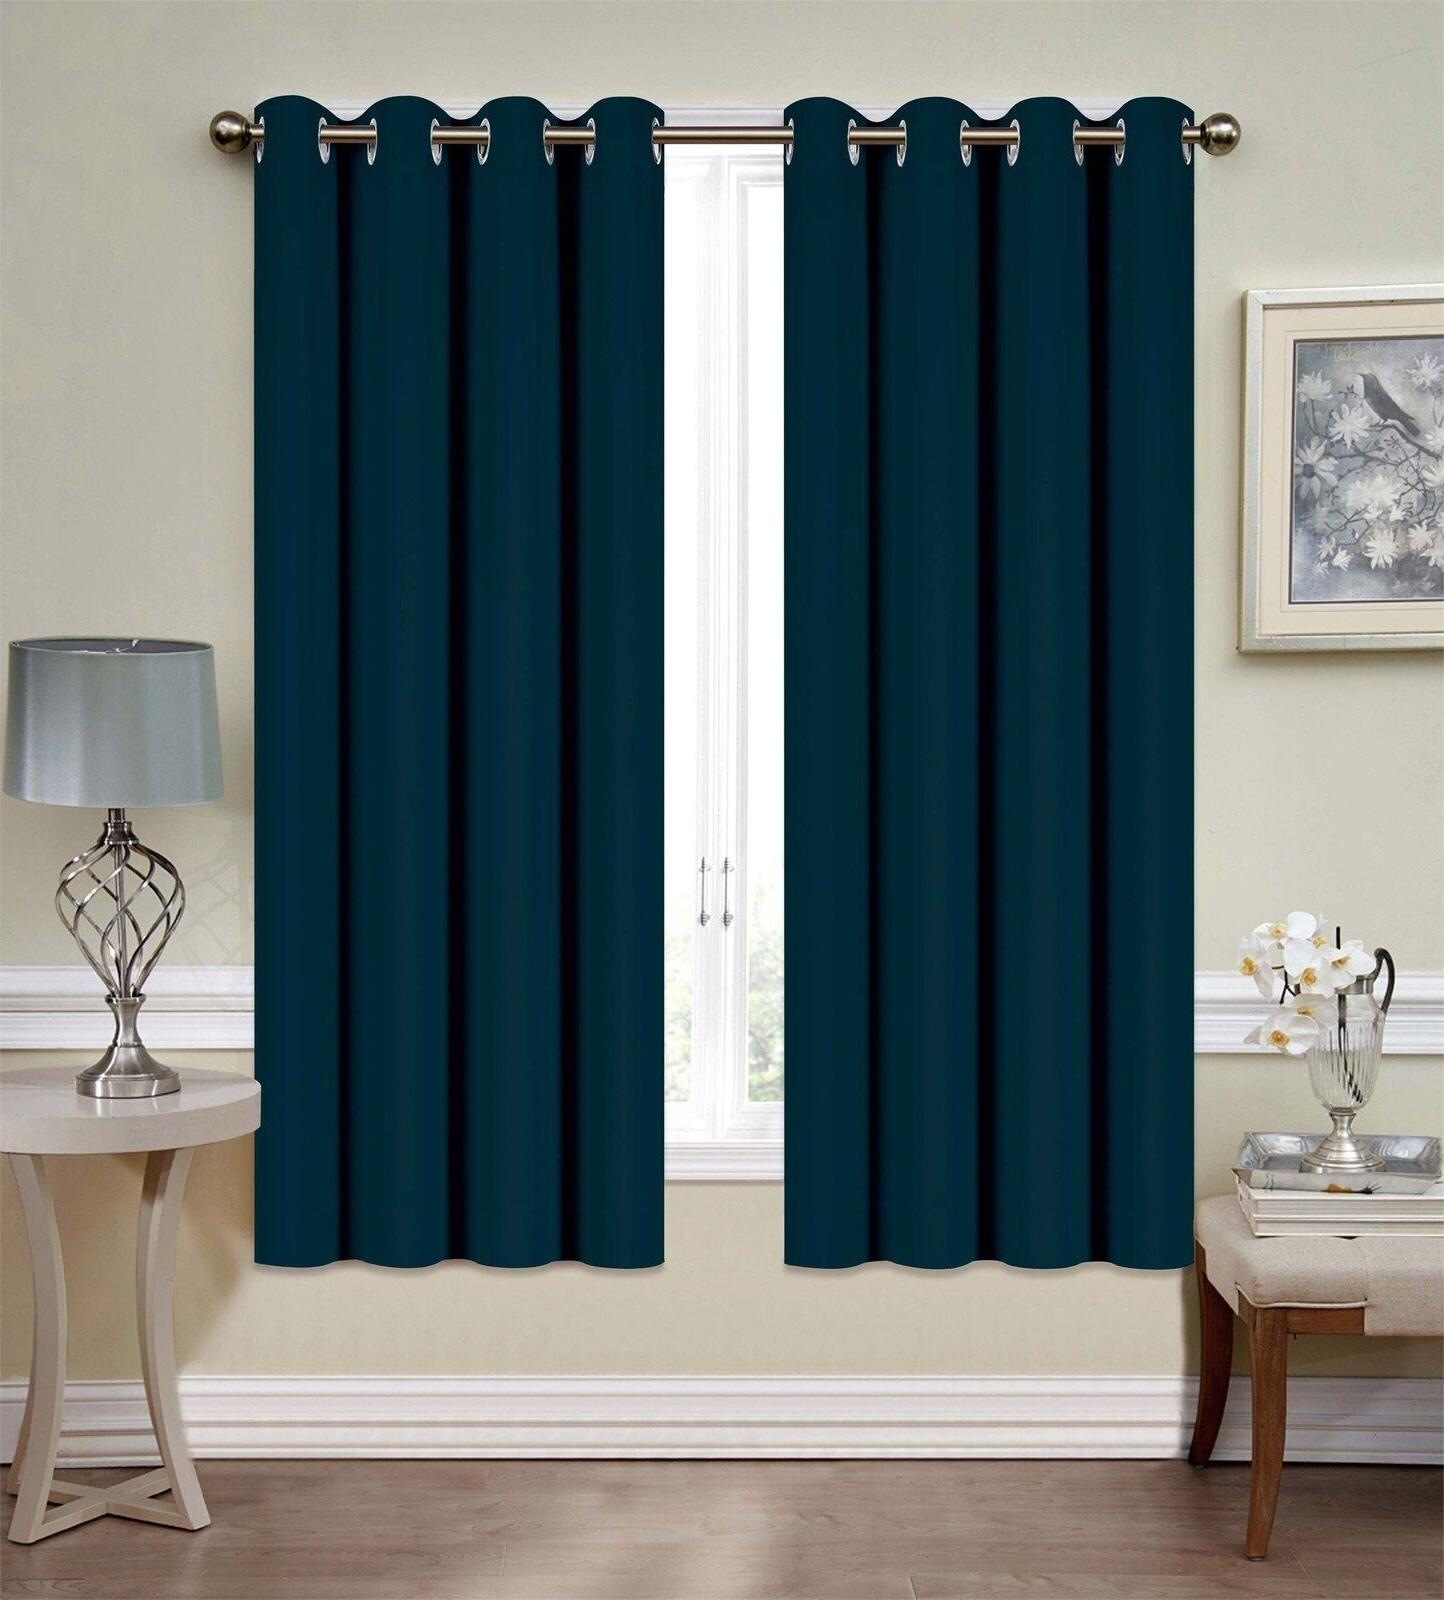 "Mellanni Blackout Curtains 52""x63"" Thermal Silver"